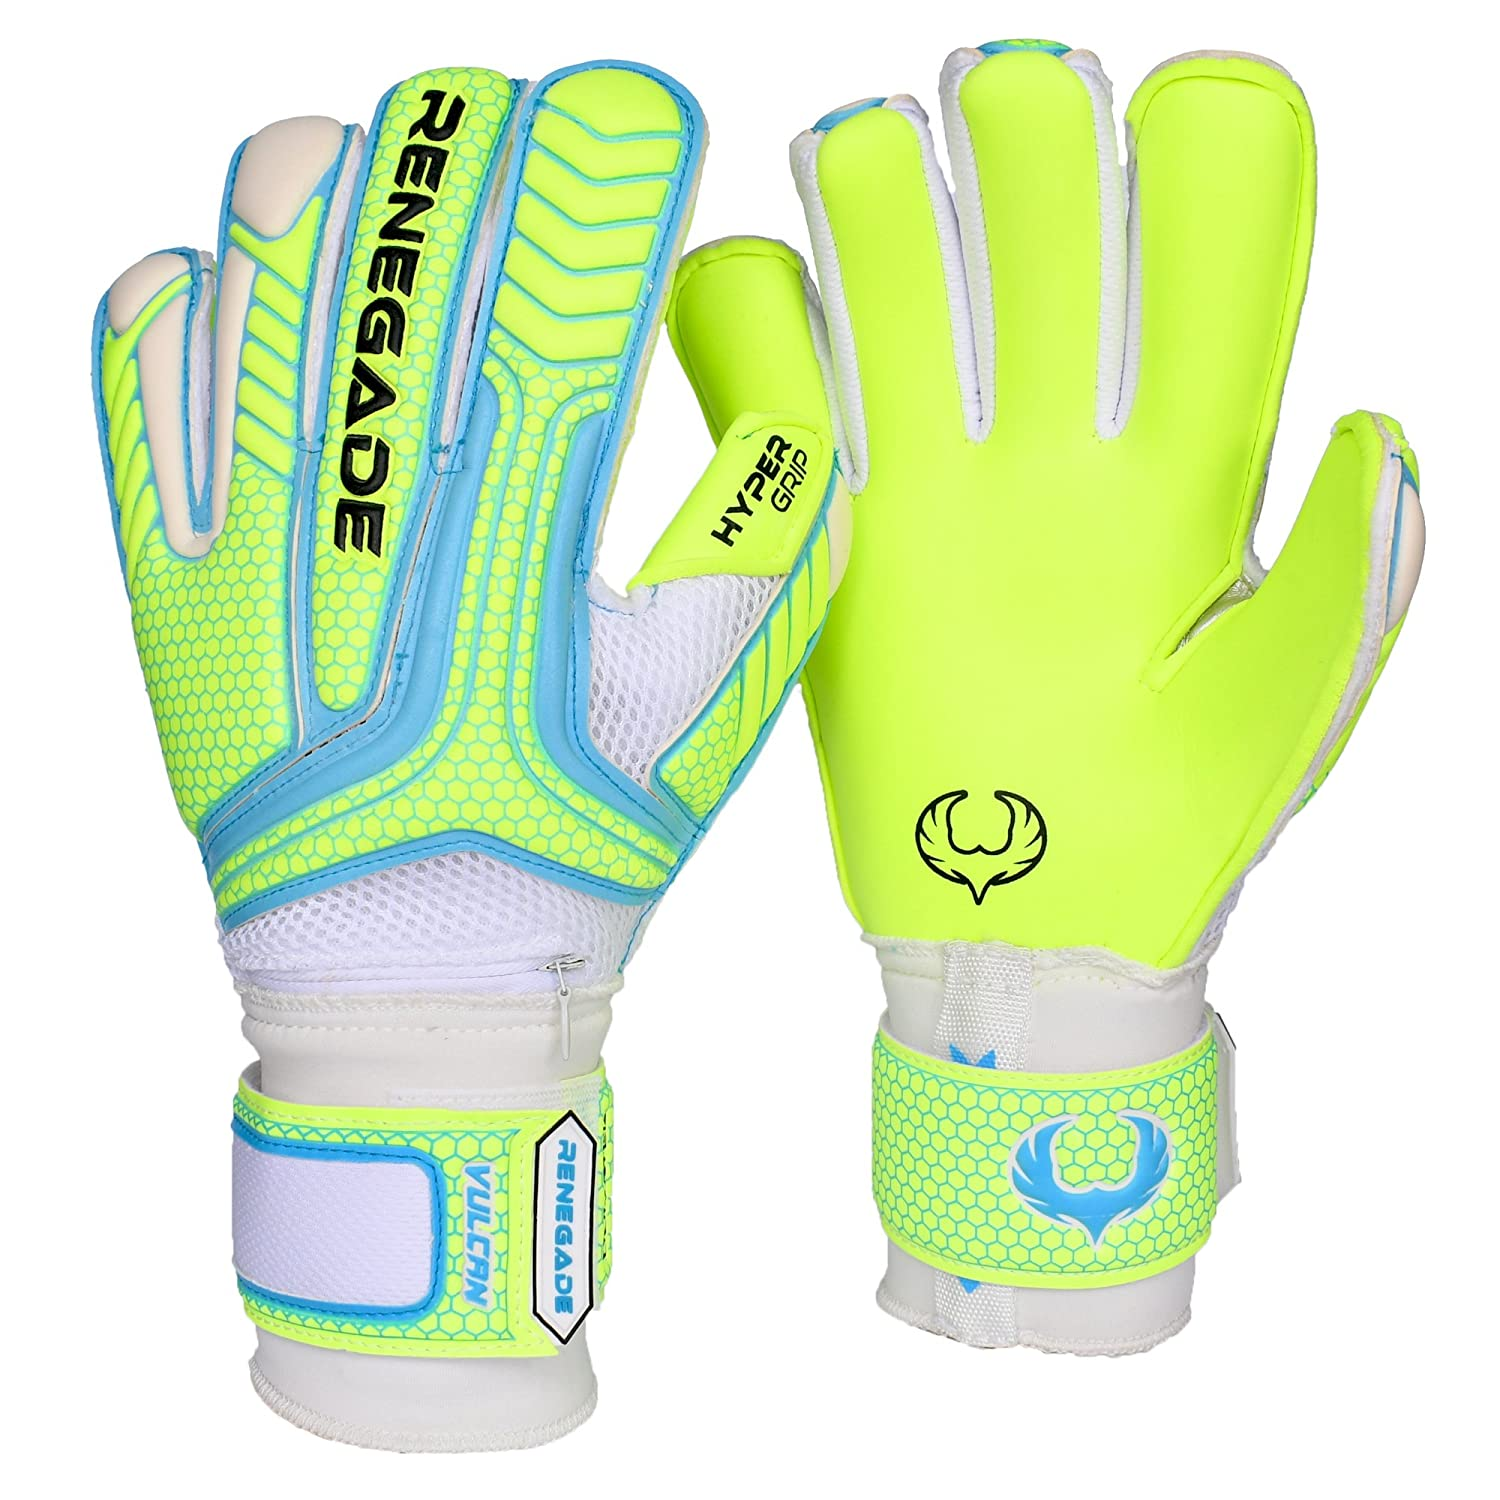 Renegade GK Vulcan Goalie Gloves with Removable Pro fingersaves – サイズ6 – 11、3スタイル/カット(ハイブリッド、ロール、フラット) – 向上Anyサッカーゴールキーパーの自信&パフォーマンス – ユニセックス、大人用、& Youth B0741KMS6H 8|ロールカット(アビス)(Roll Cut (Abyss)) 8